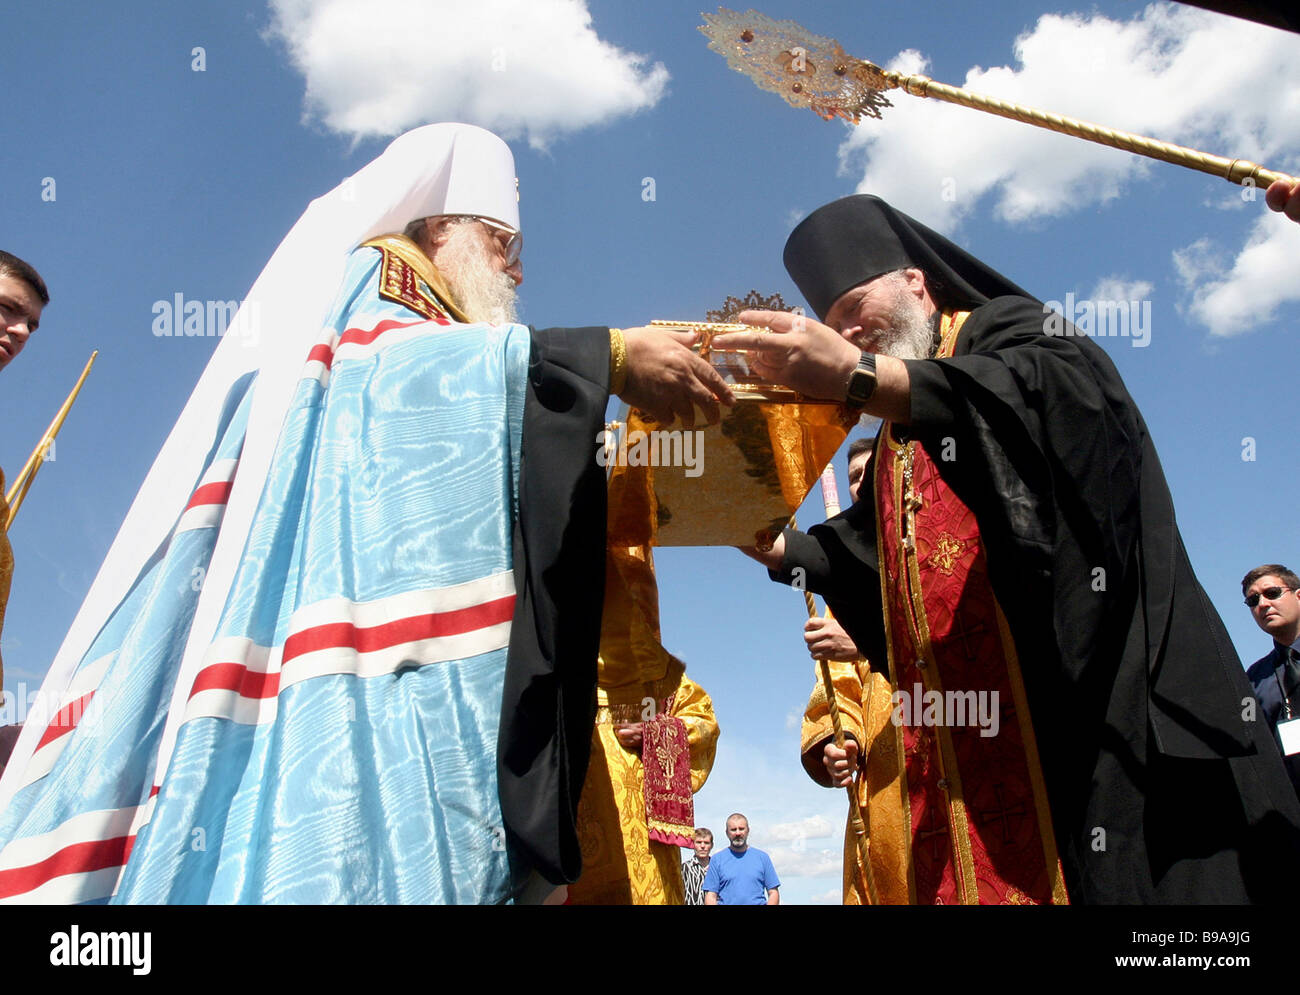 The clergy of Minsk capital of Belarus meet at the city airport the relic case containing the right hand of St John - Stock Image